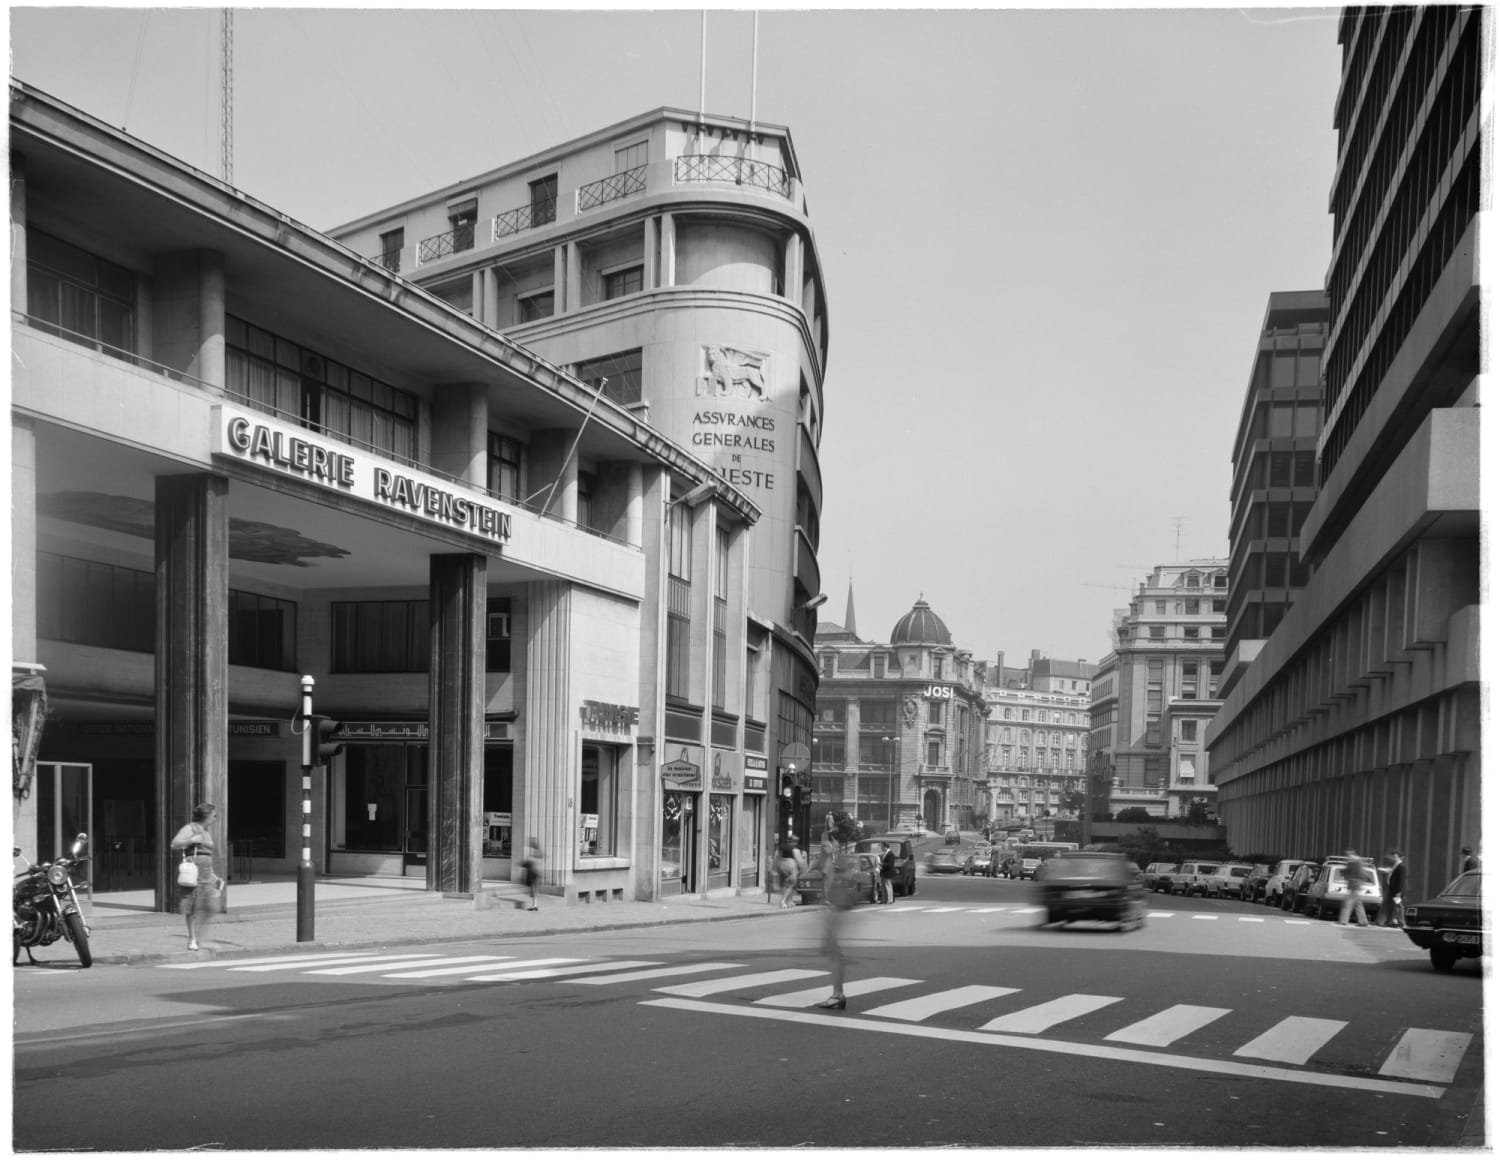 A view from the Galerie Ravenstein, Galerie Ravenstein, Bruxelles, entrée côté rue Ravenstein en 1980 (© Fondation CIVA Stichting/AAM, Brussels)